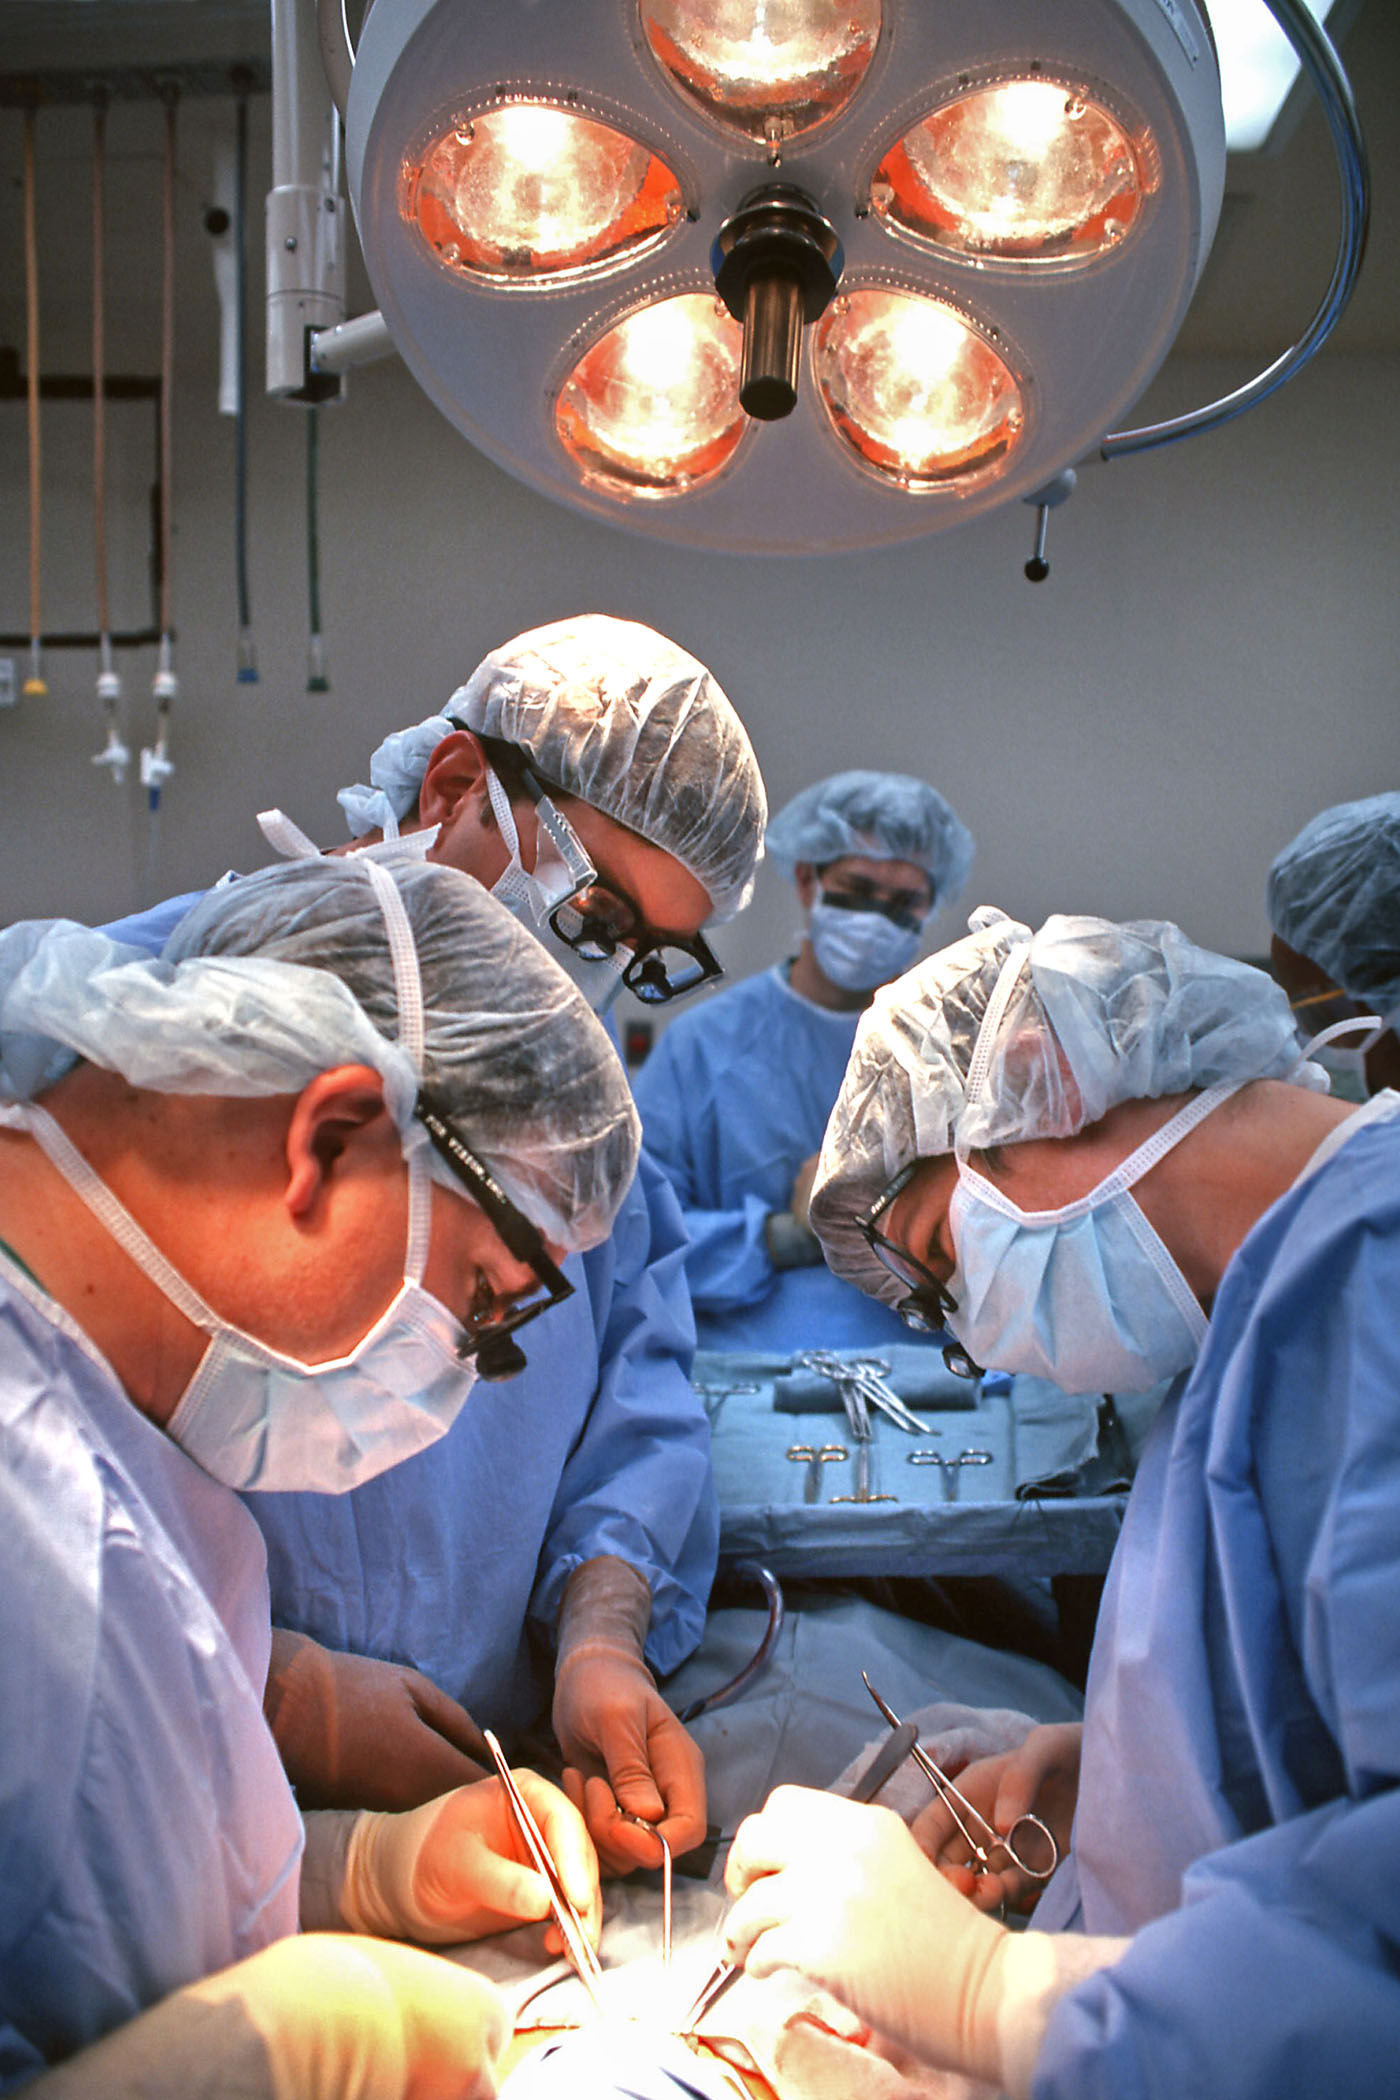 Doctors conducting surgery on a patient